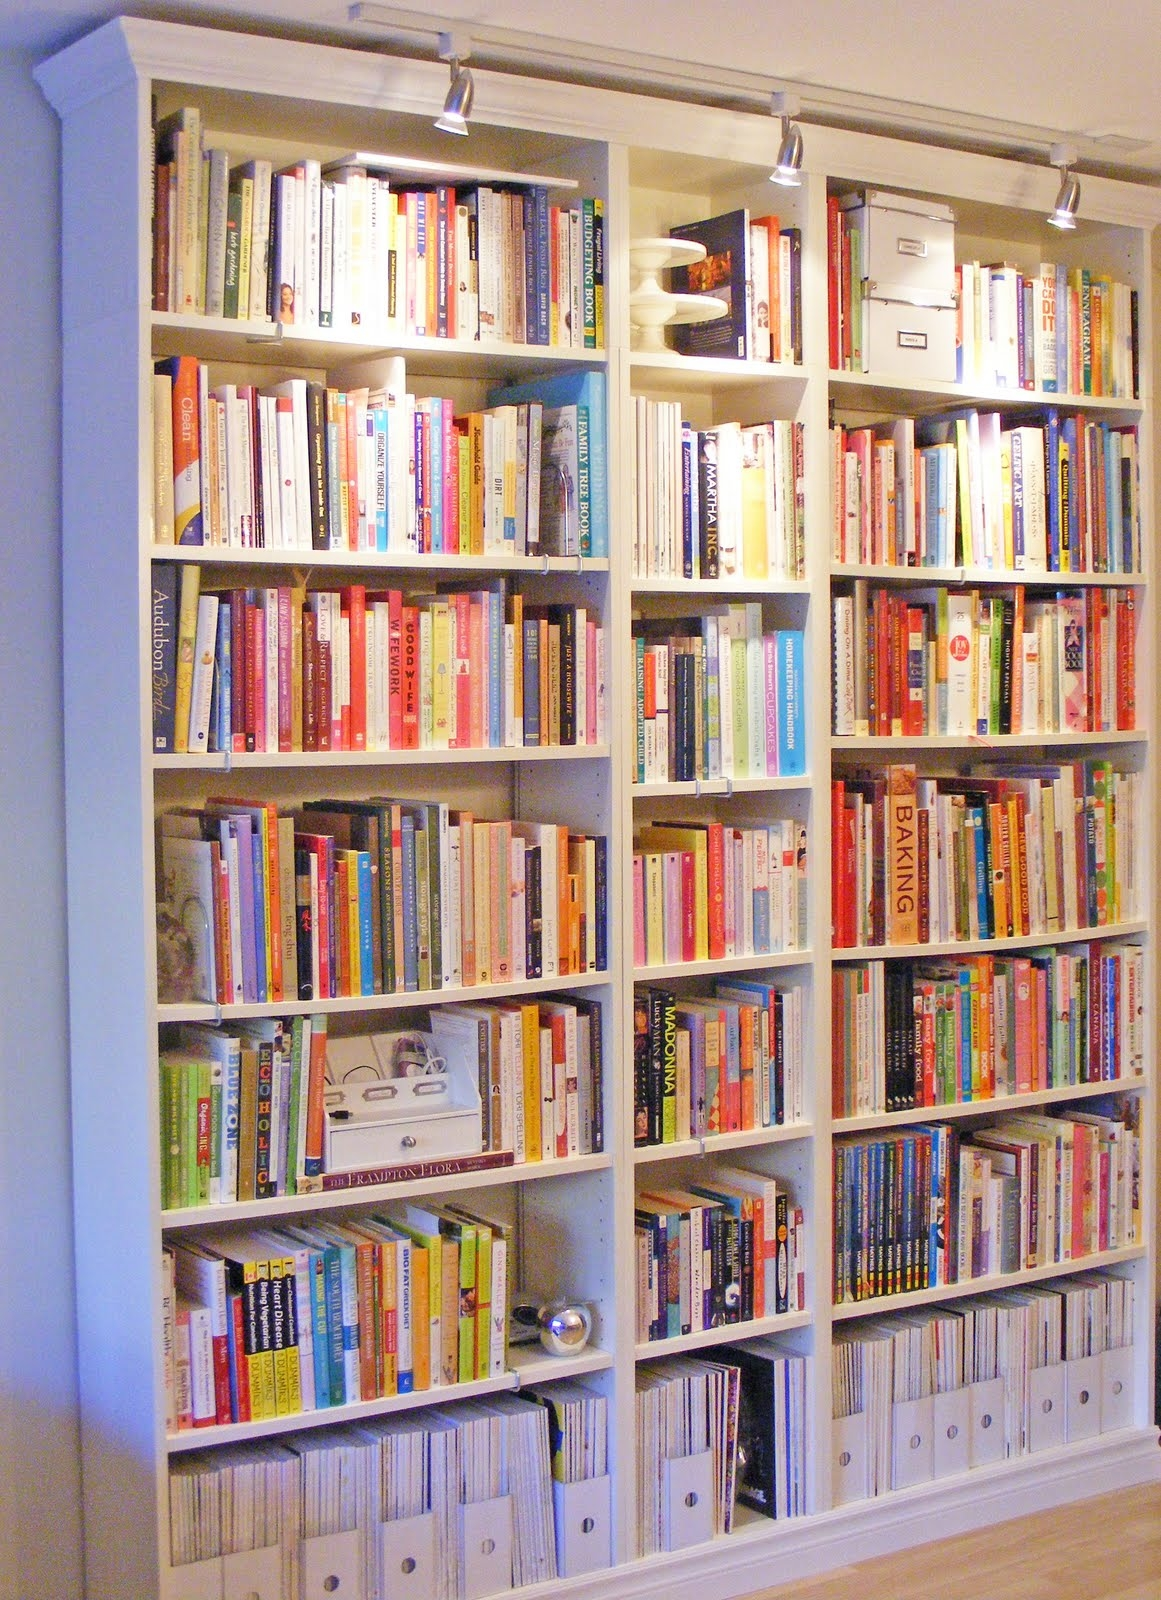 For The Nook Ikea Bookcases But Add Trim And Do Lights Across With Regard To Library Bookcase Lighting (View 8 of 15)